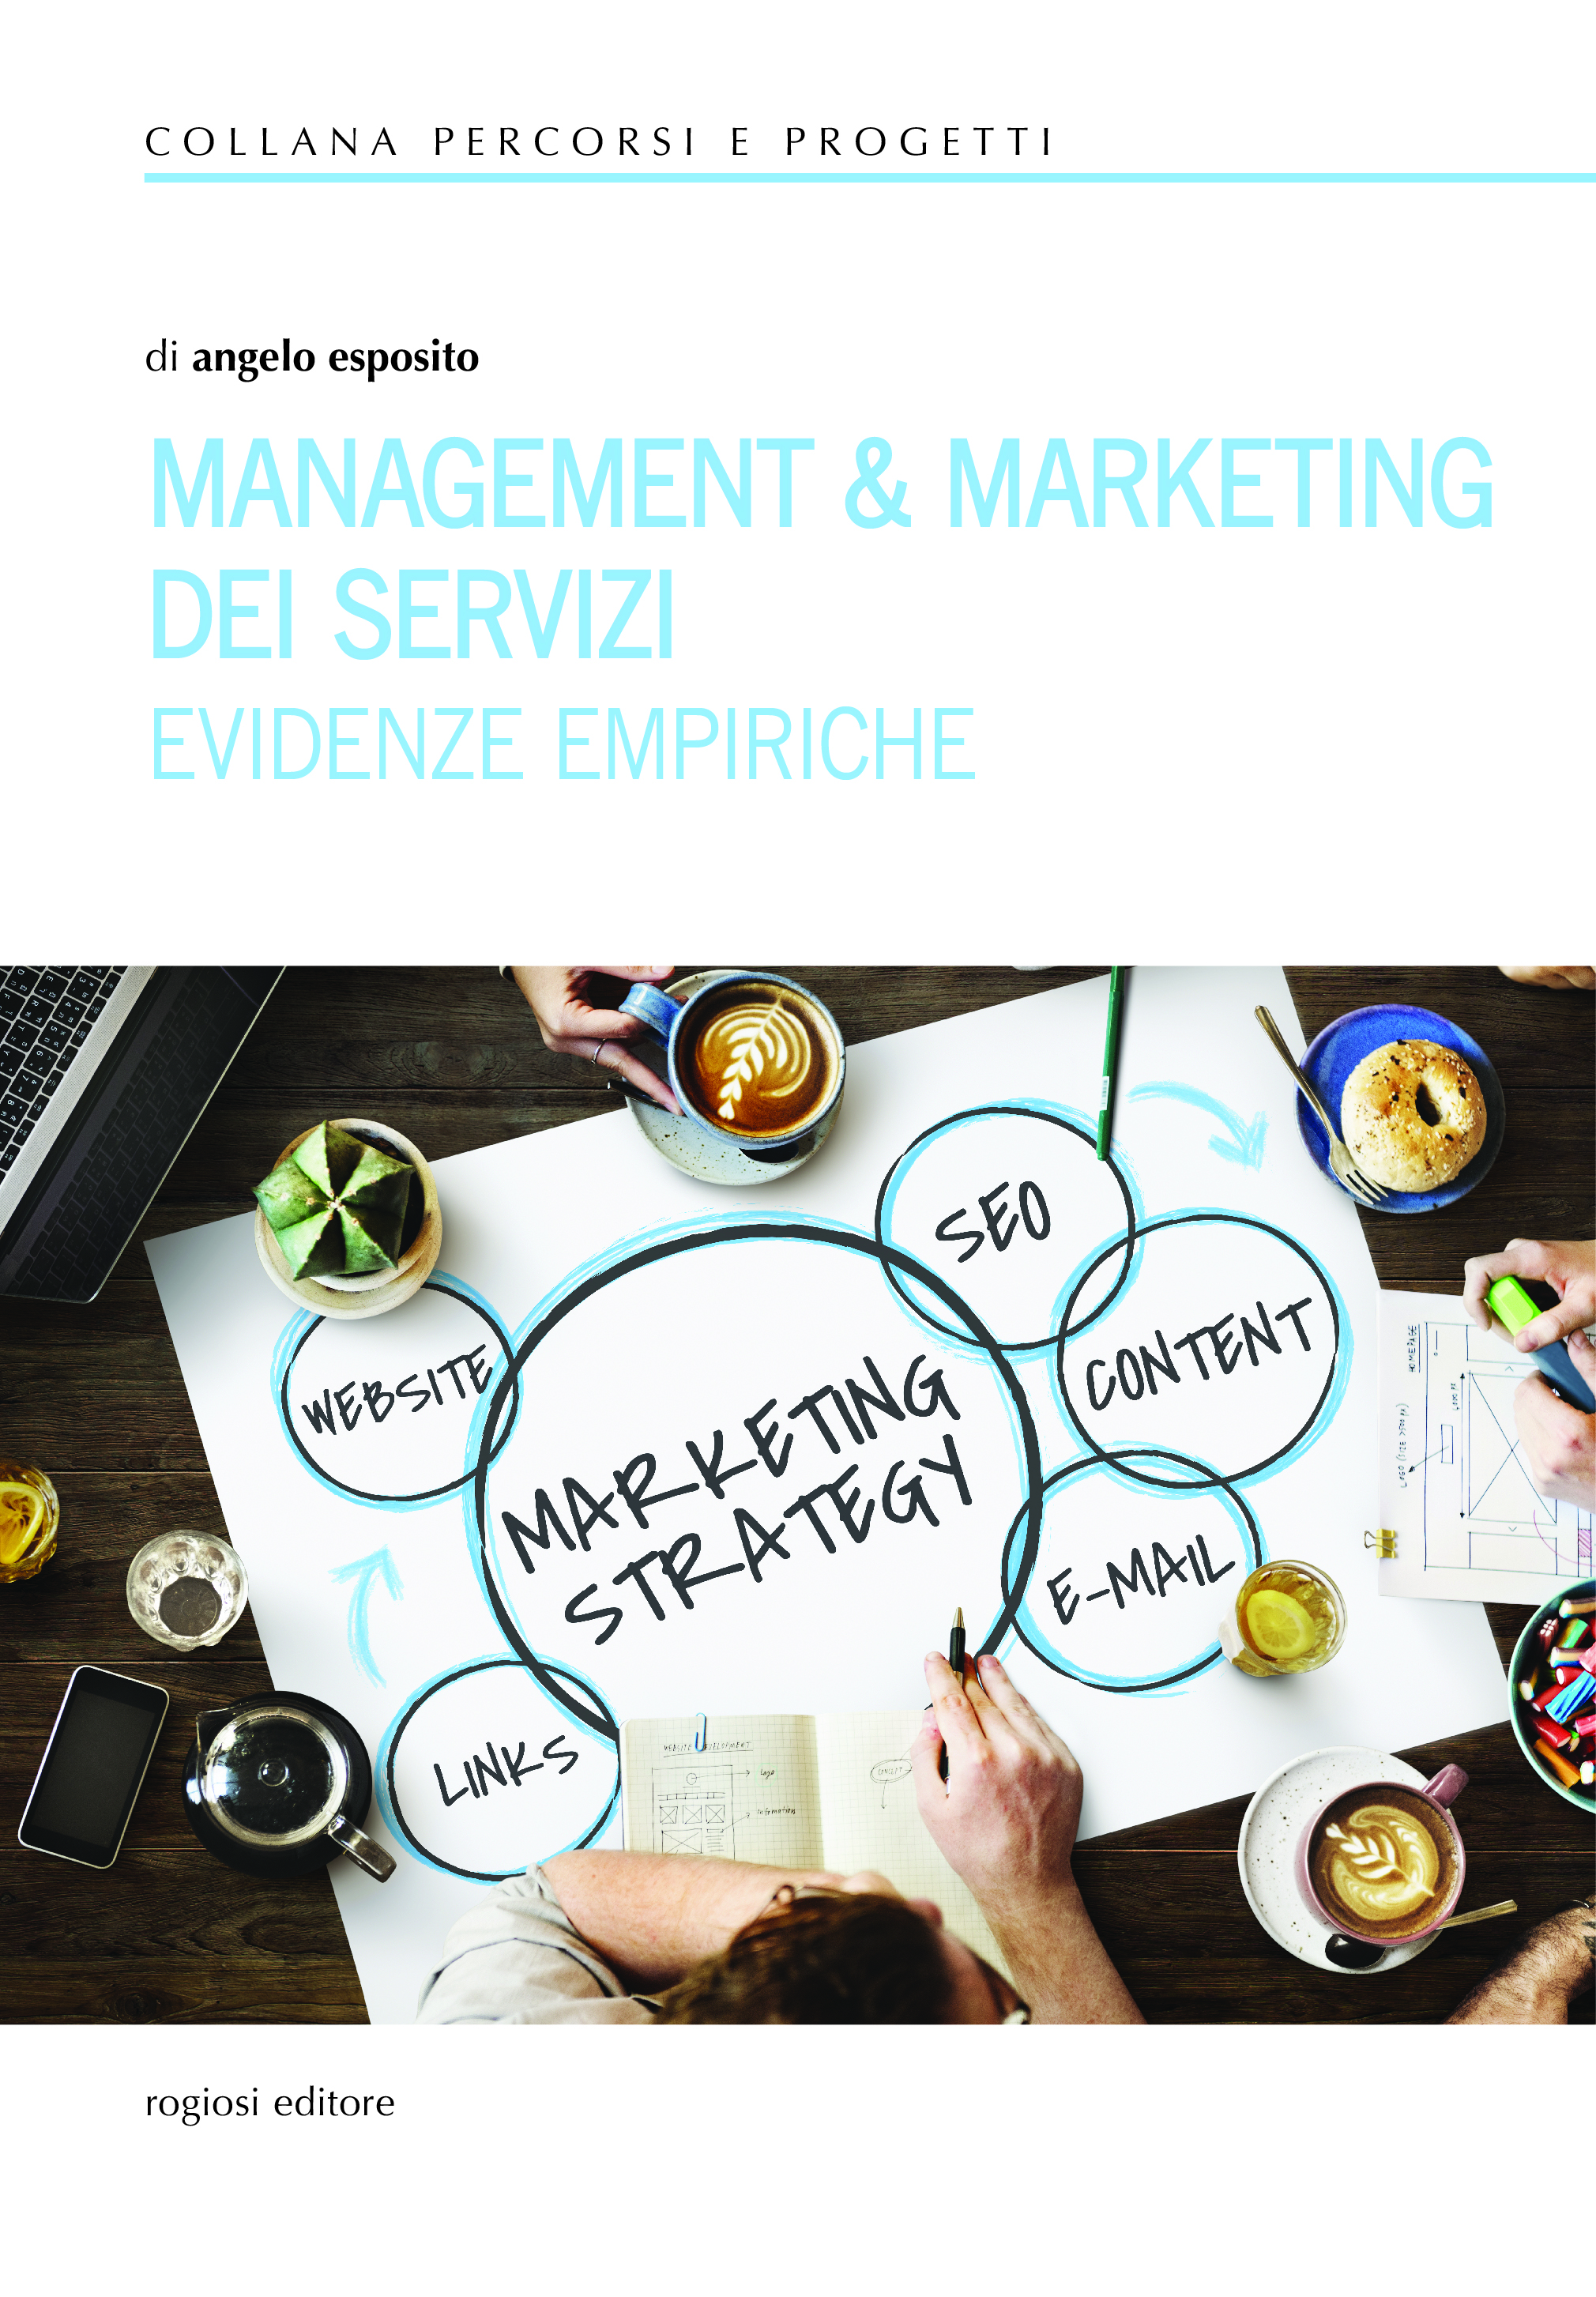 Management e Marketing dei servizi evidenze empiriche